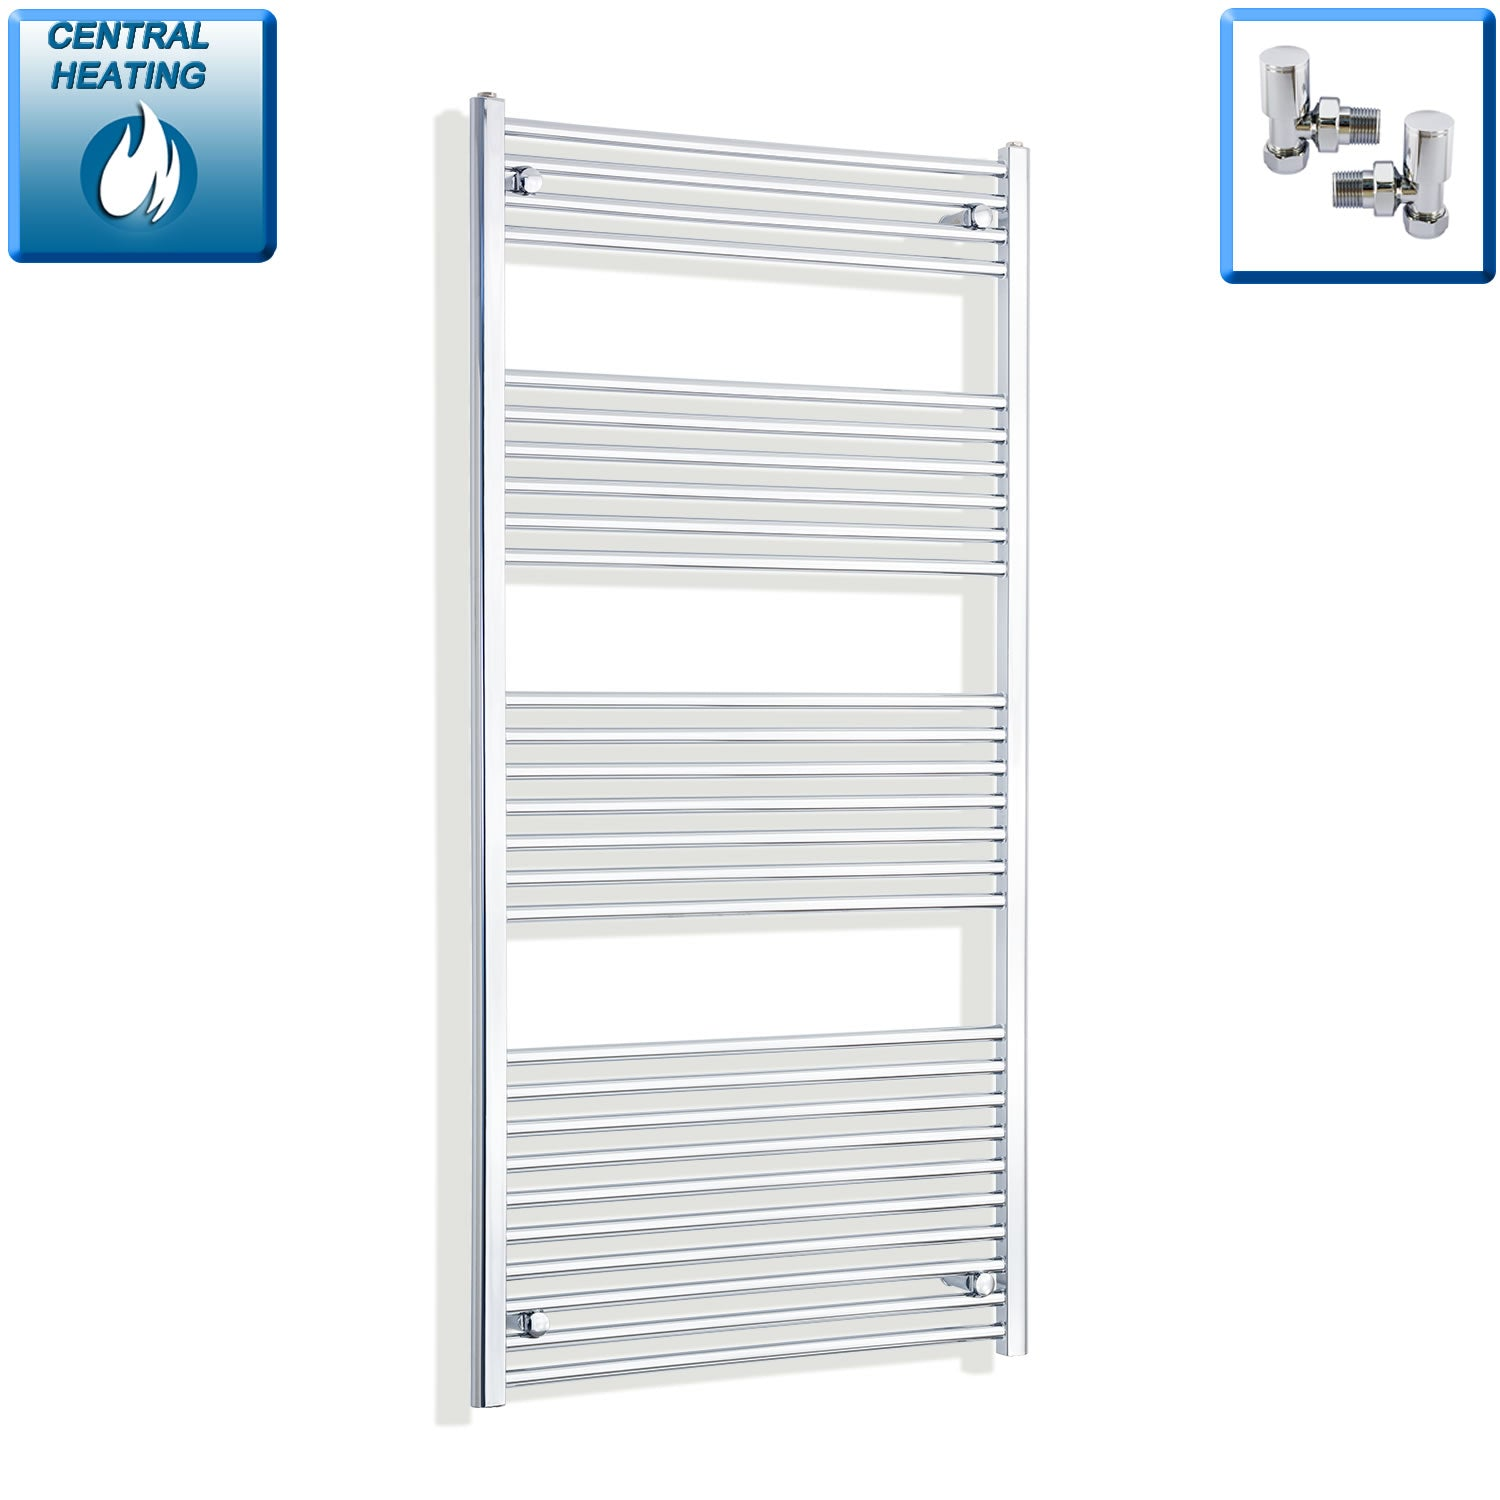 850mm Wide 1600mm High Flat Chrome Heated Towel Rail Radiator HTR,With Angled Valve